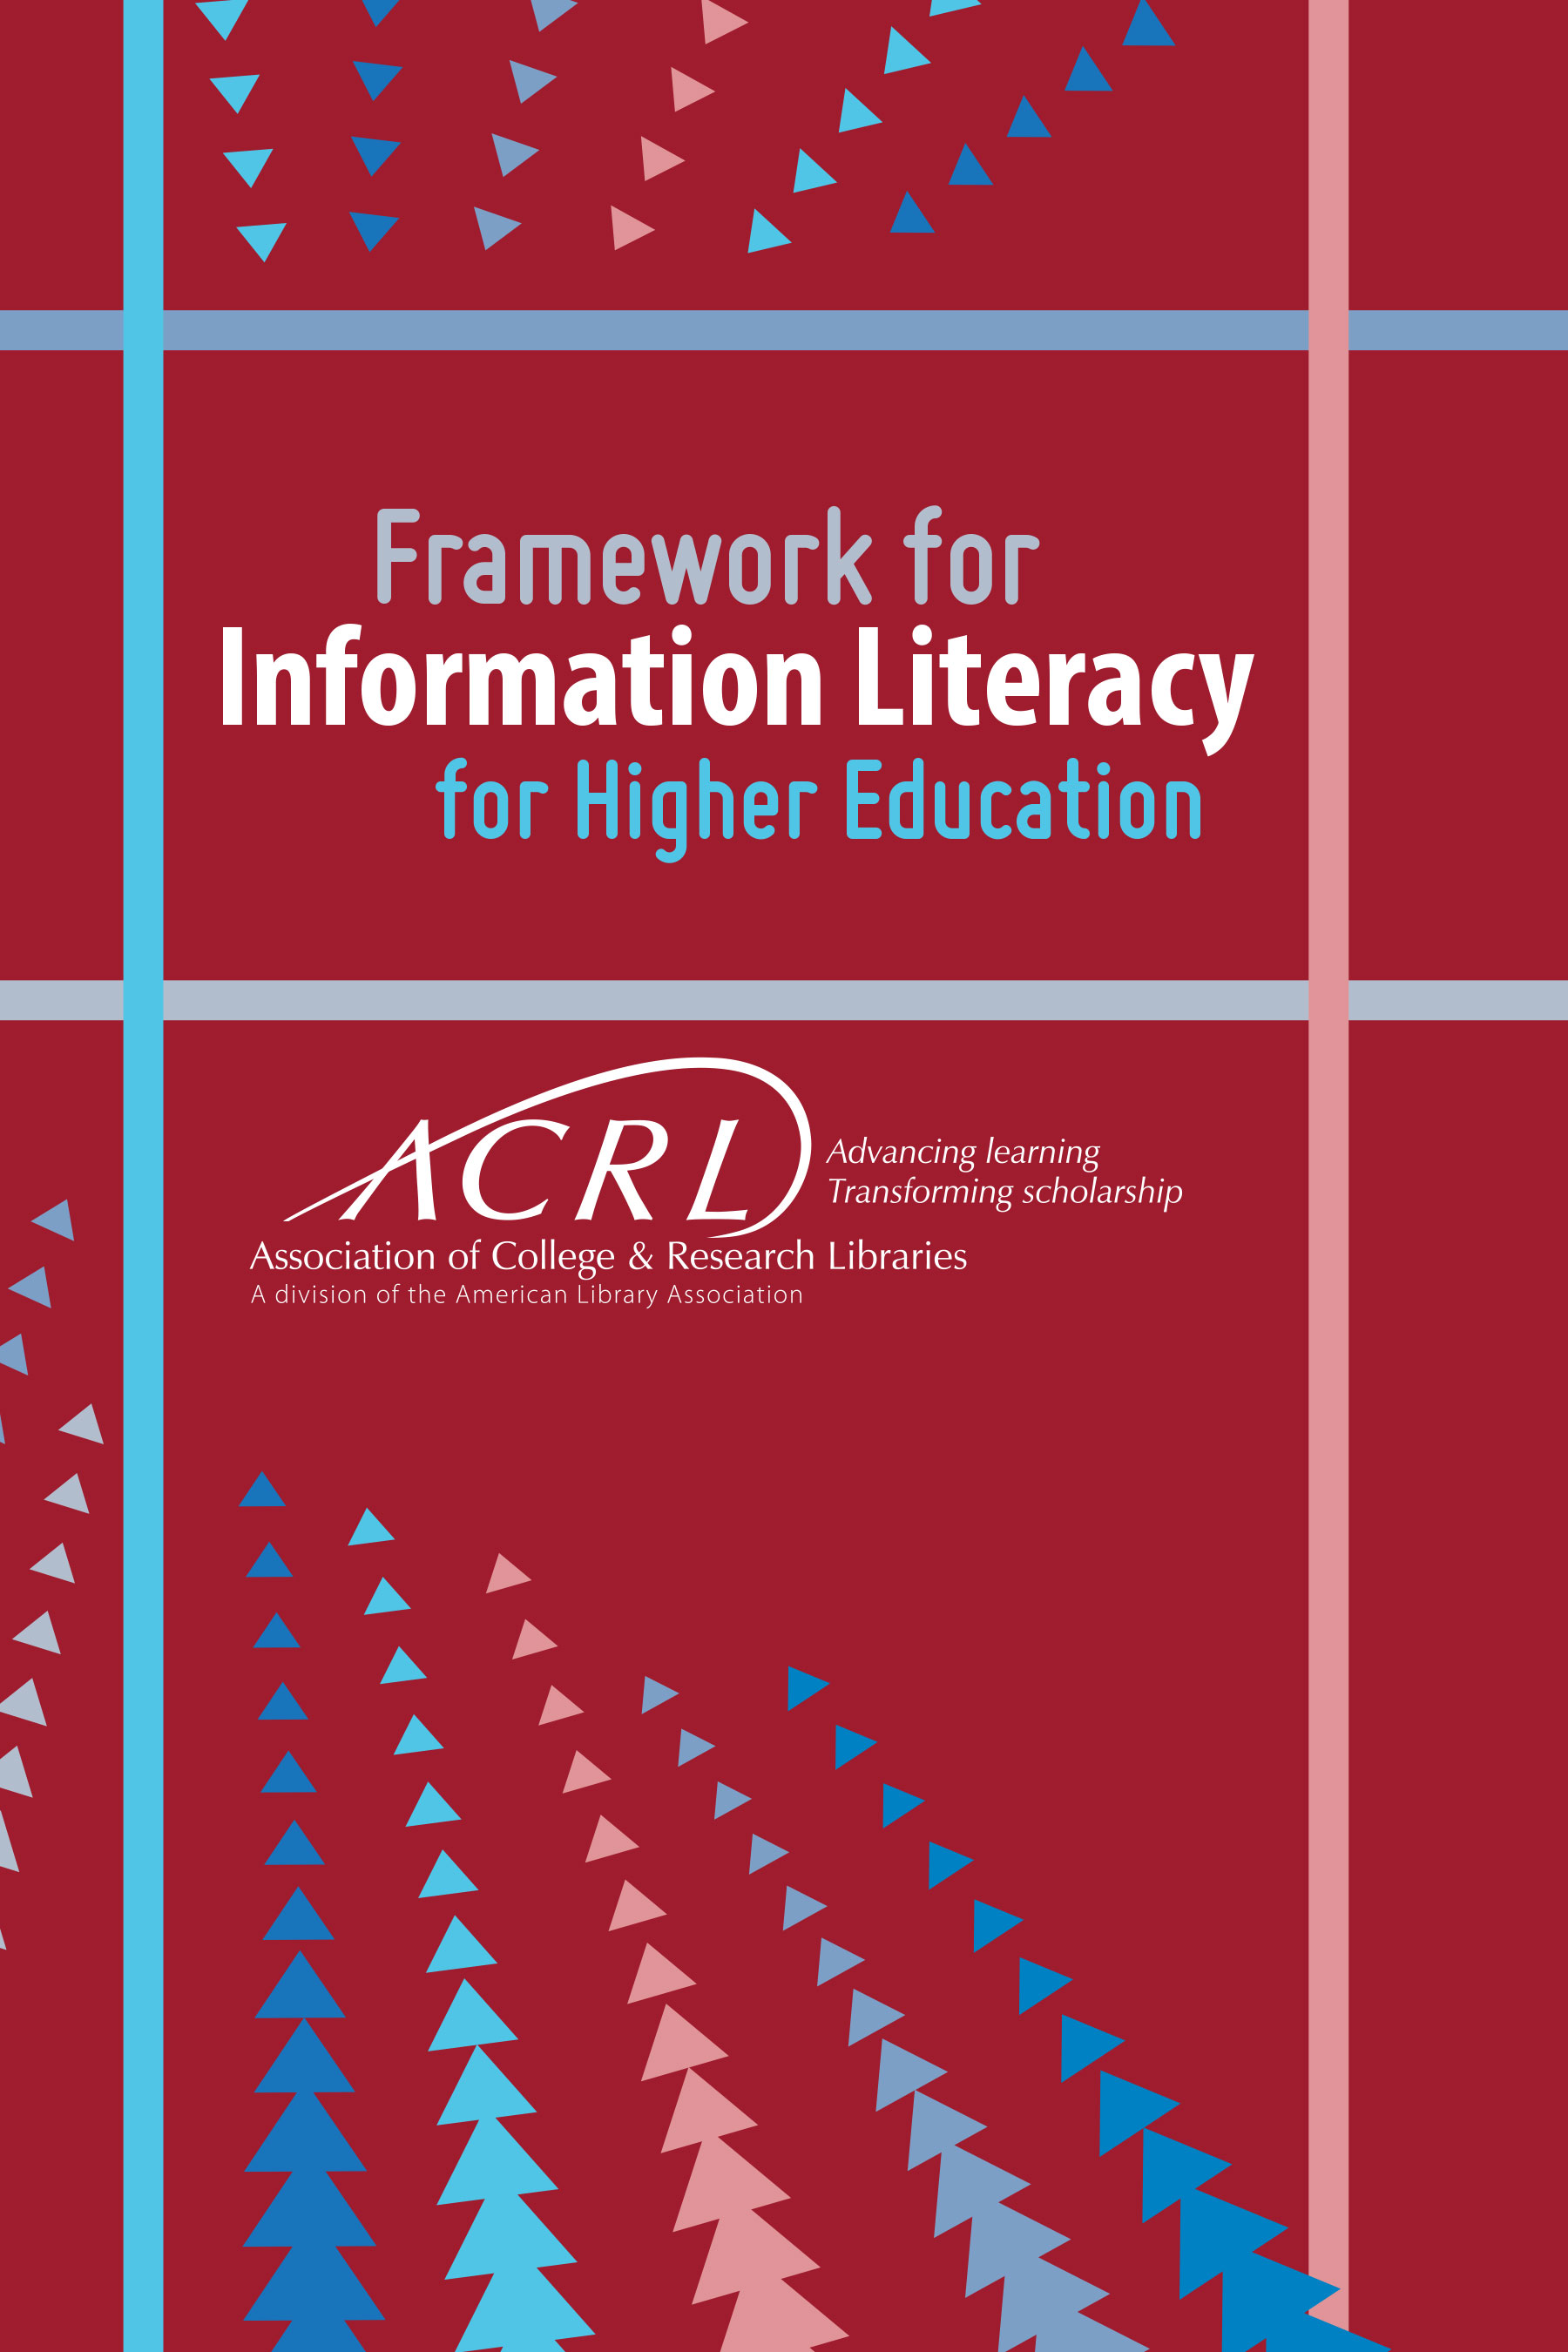 Image of cover of Framework for Information Literacy for Higher Education